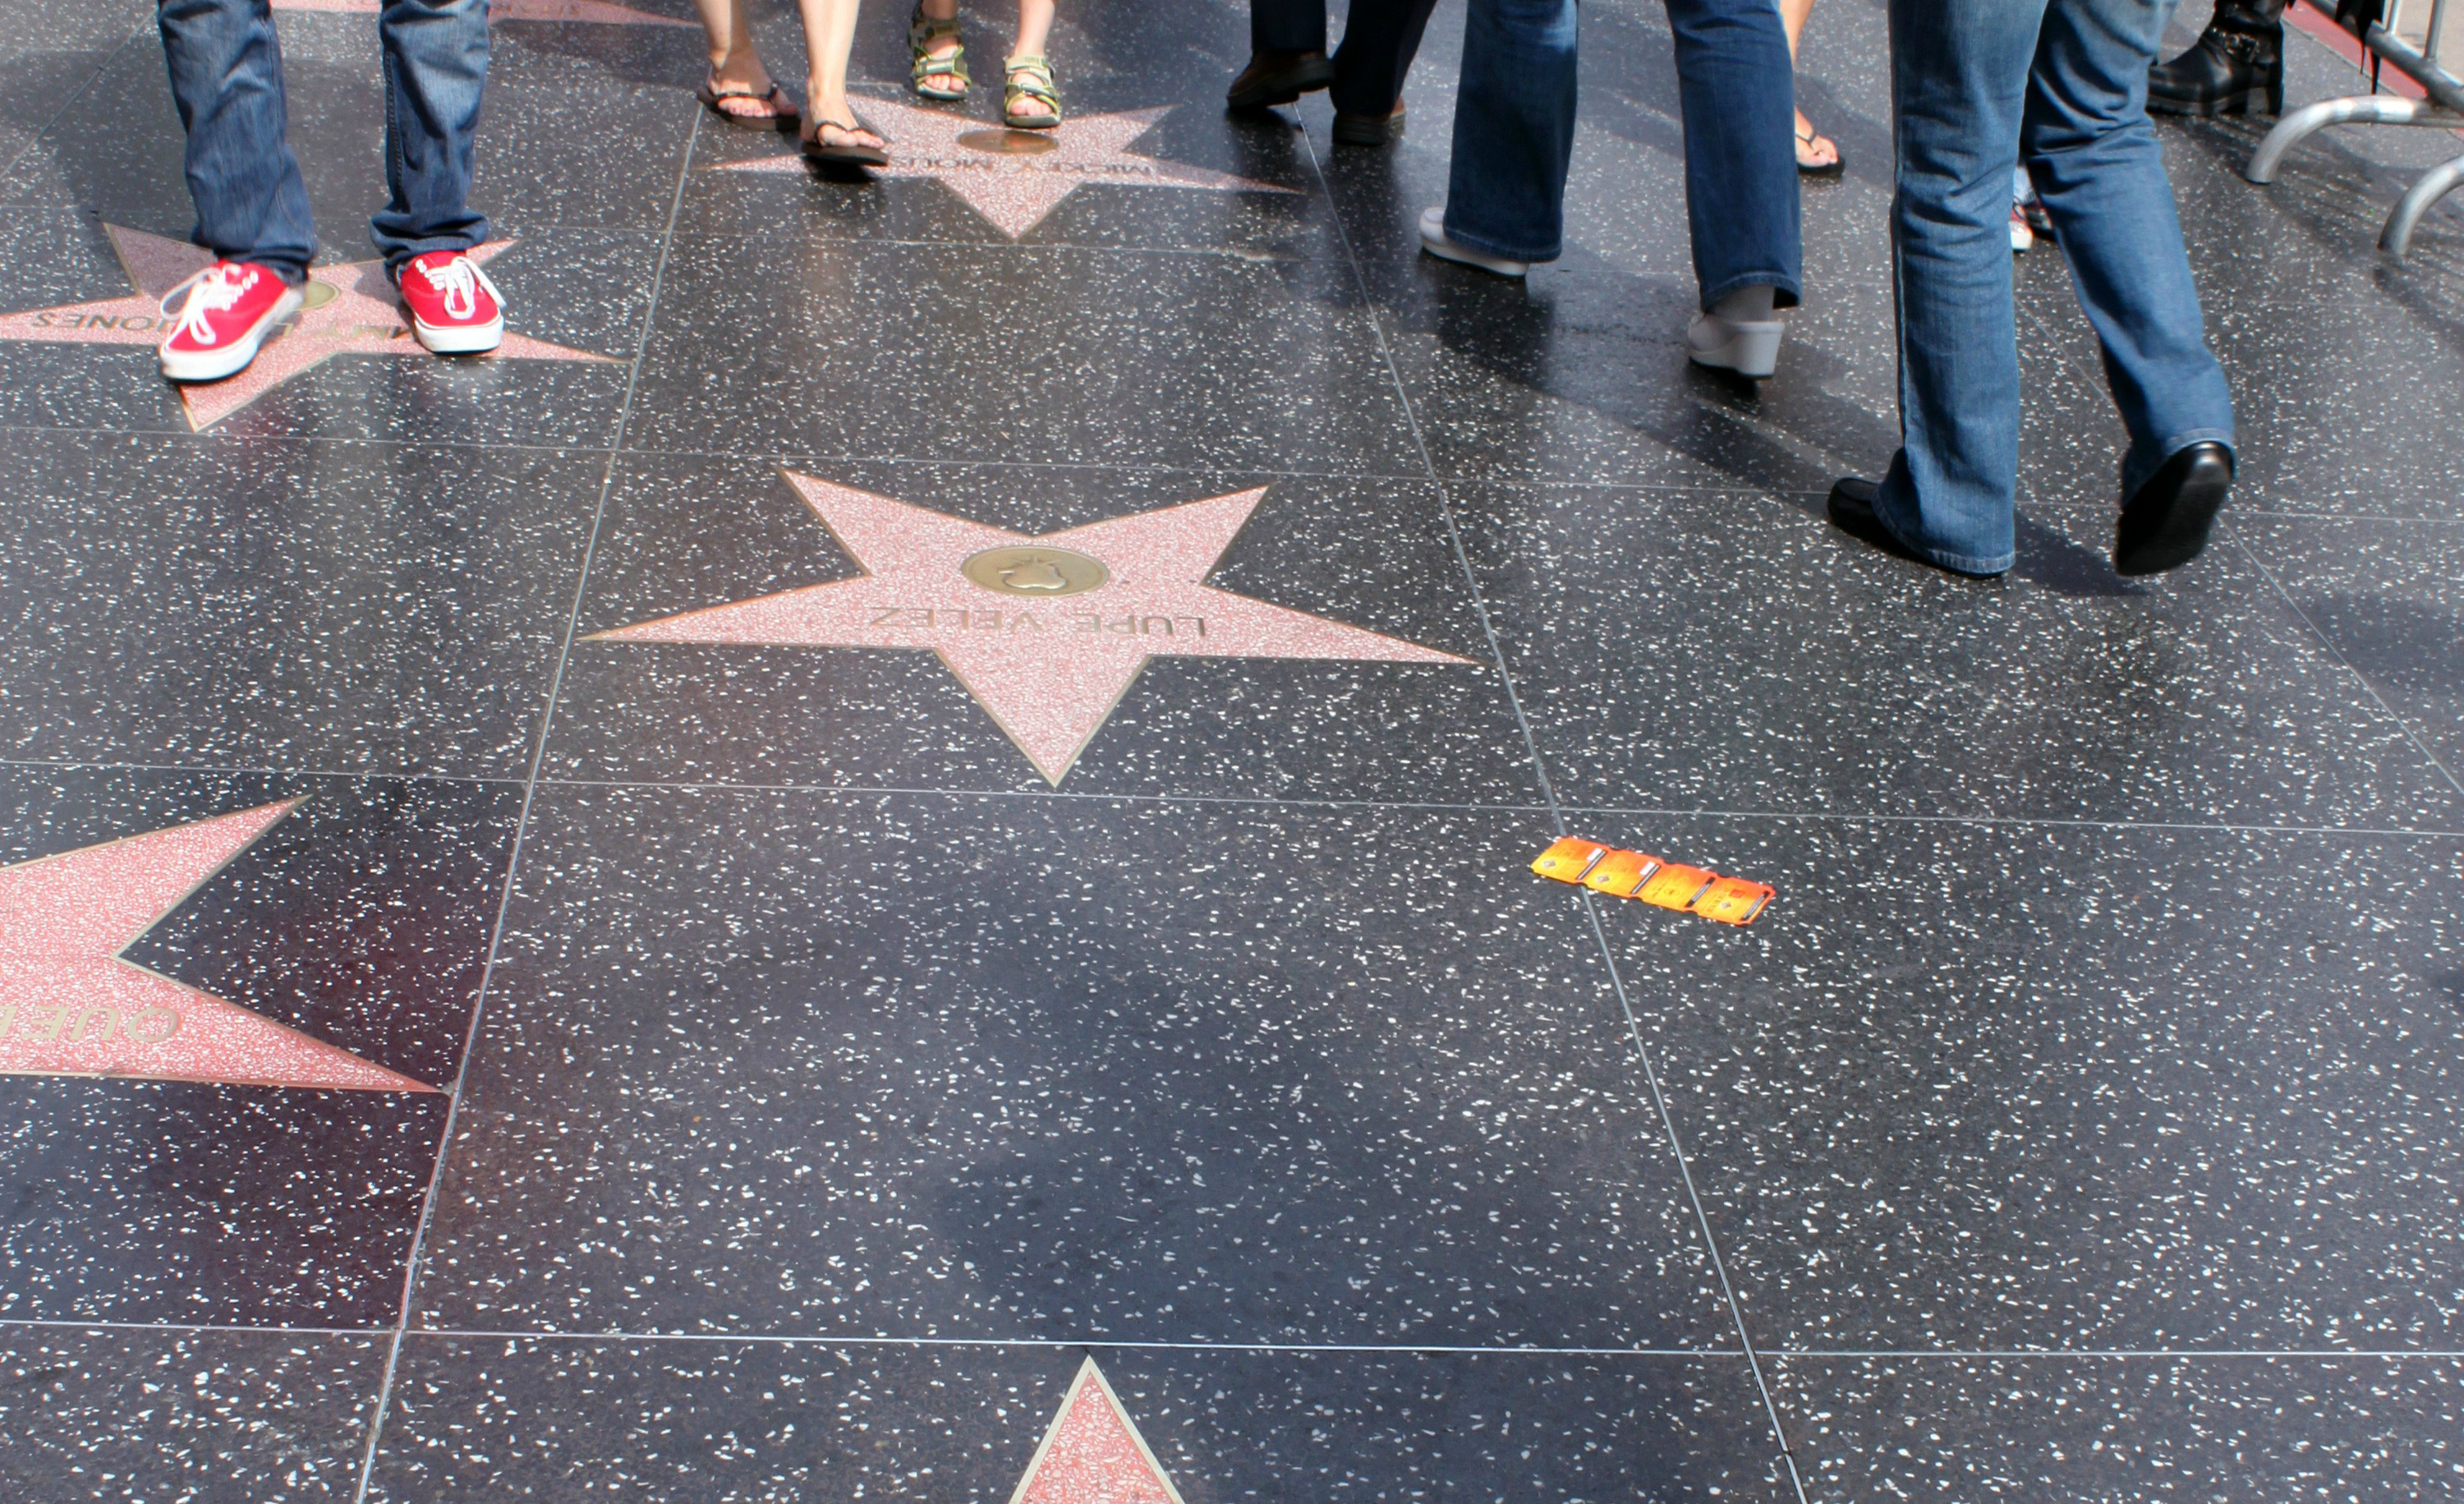 Donald Trump's Walk of Fame star was demolished this morning in protest